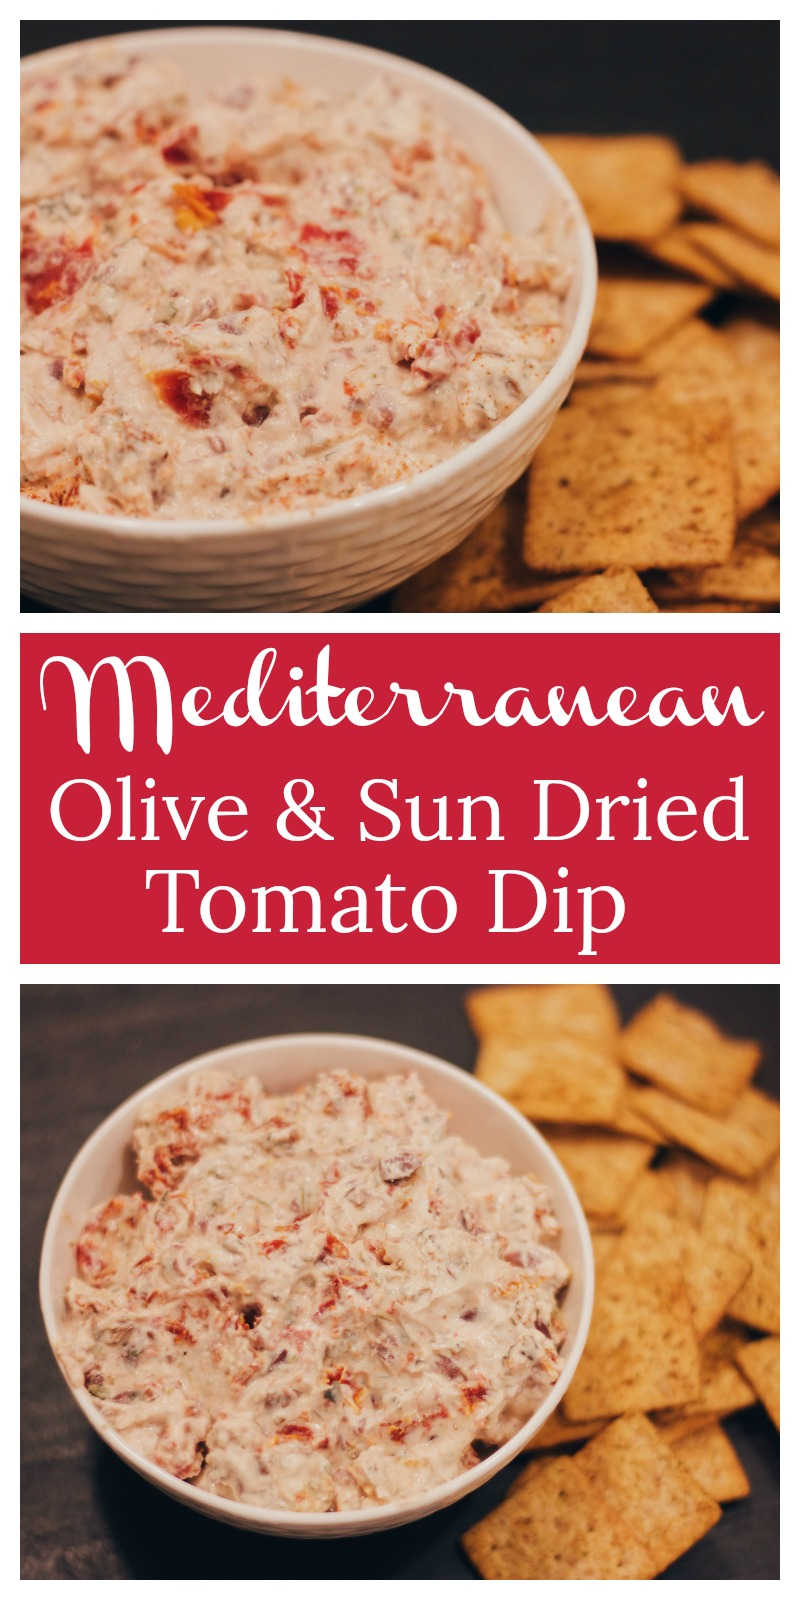 This is the perfect, guilt-free dip to serve at parties, and your friends will never suspect this Mediterranean Olive and Sun Dried Tomato Dip is a healthy snack! cardiocoffeeandkale.com!  .jpg